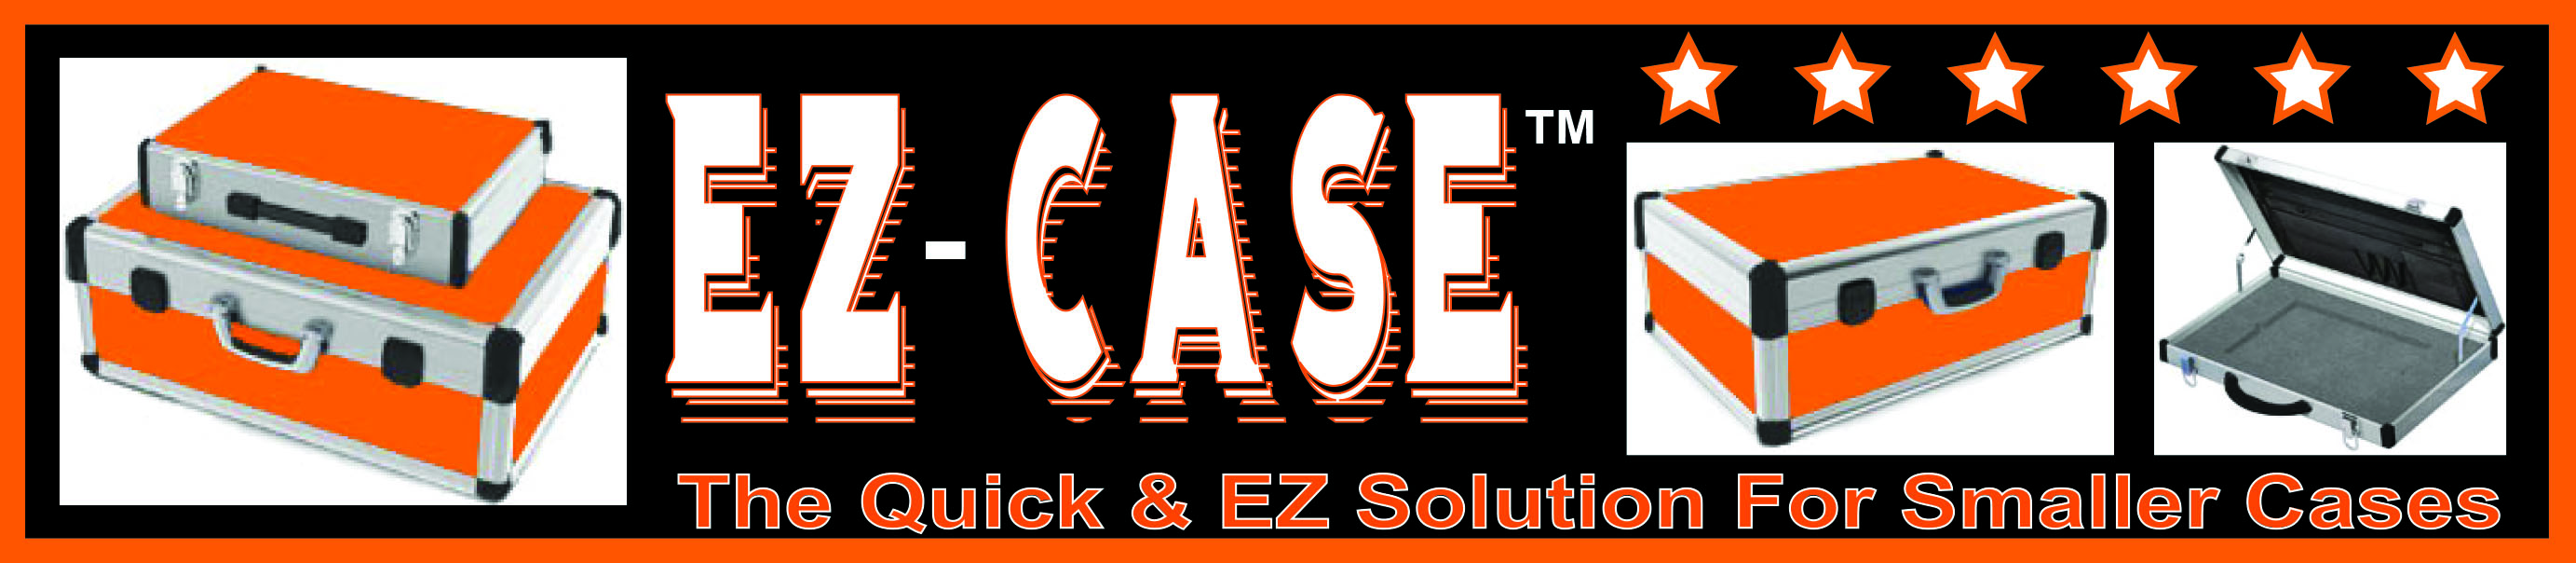 banner-ez-case-products-new.jpg